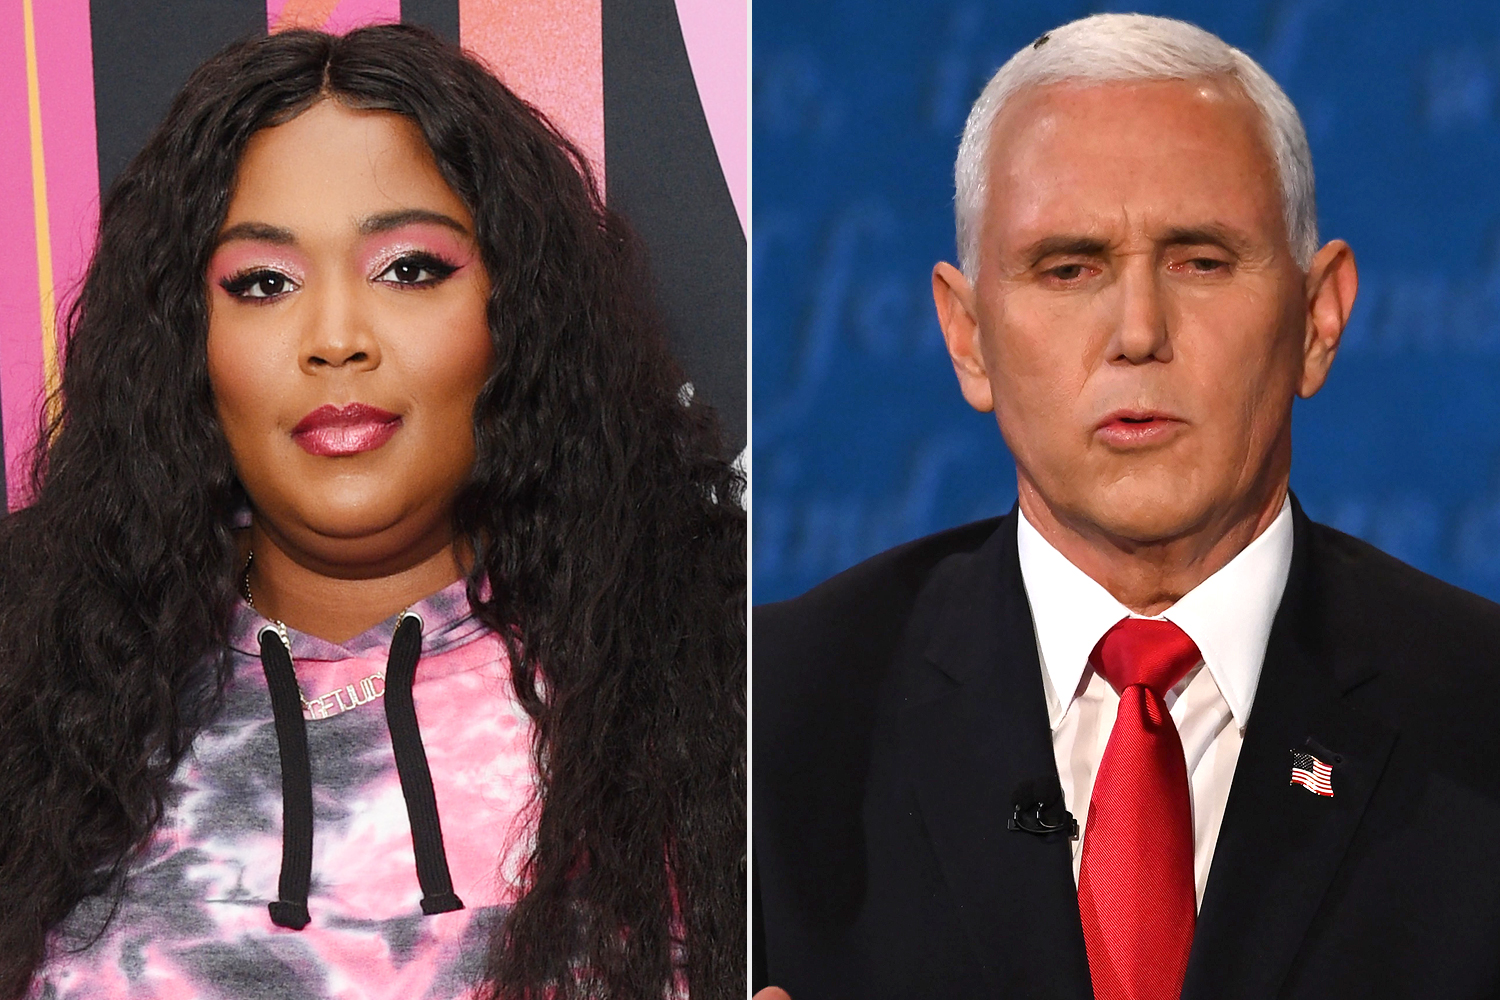 Lizzo Mike Pence